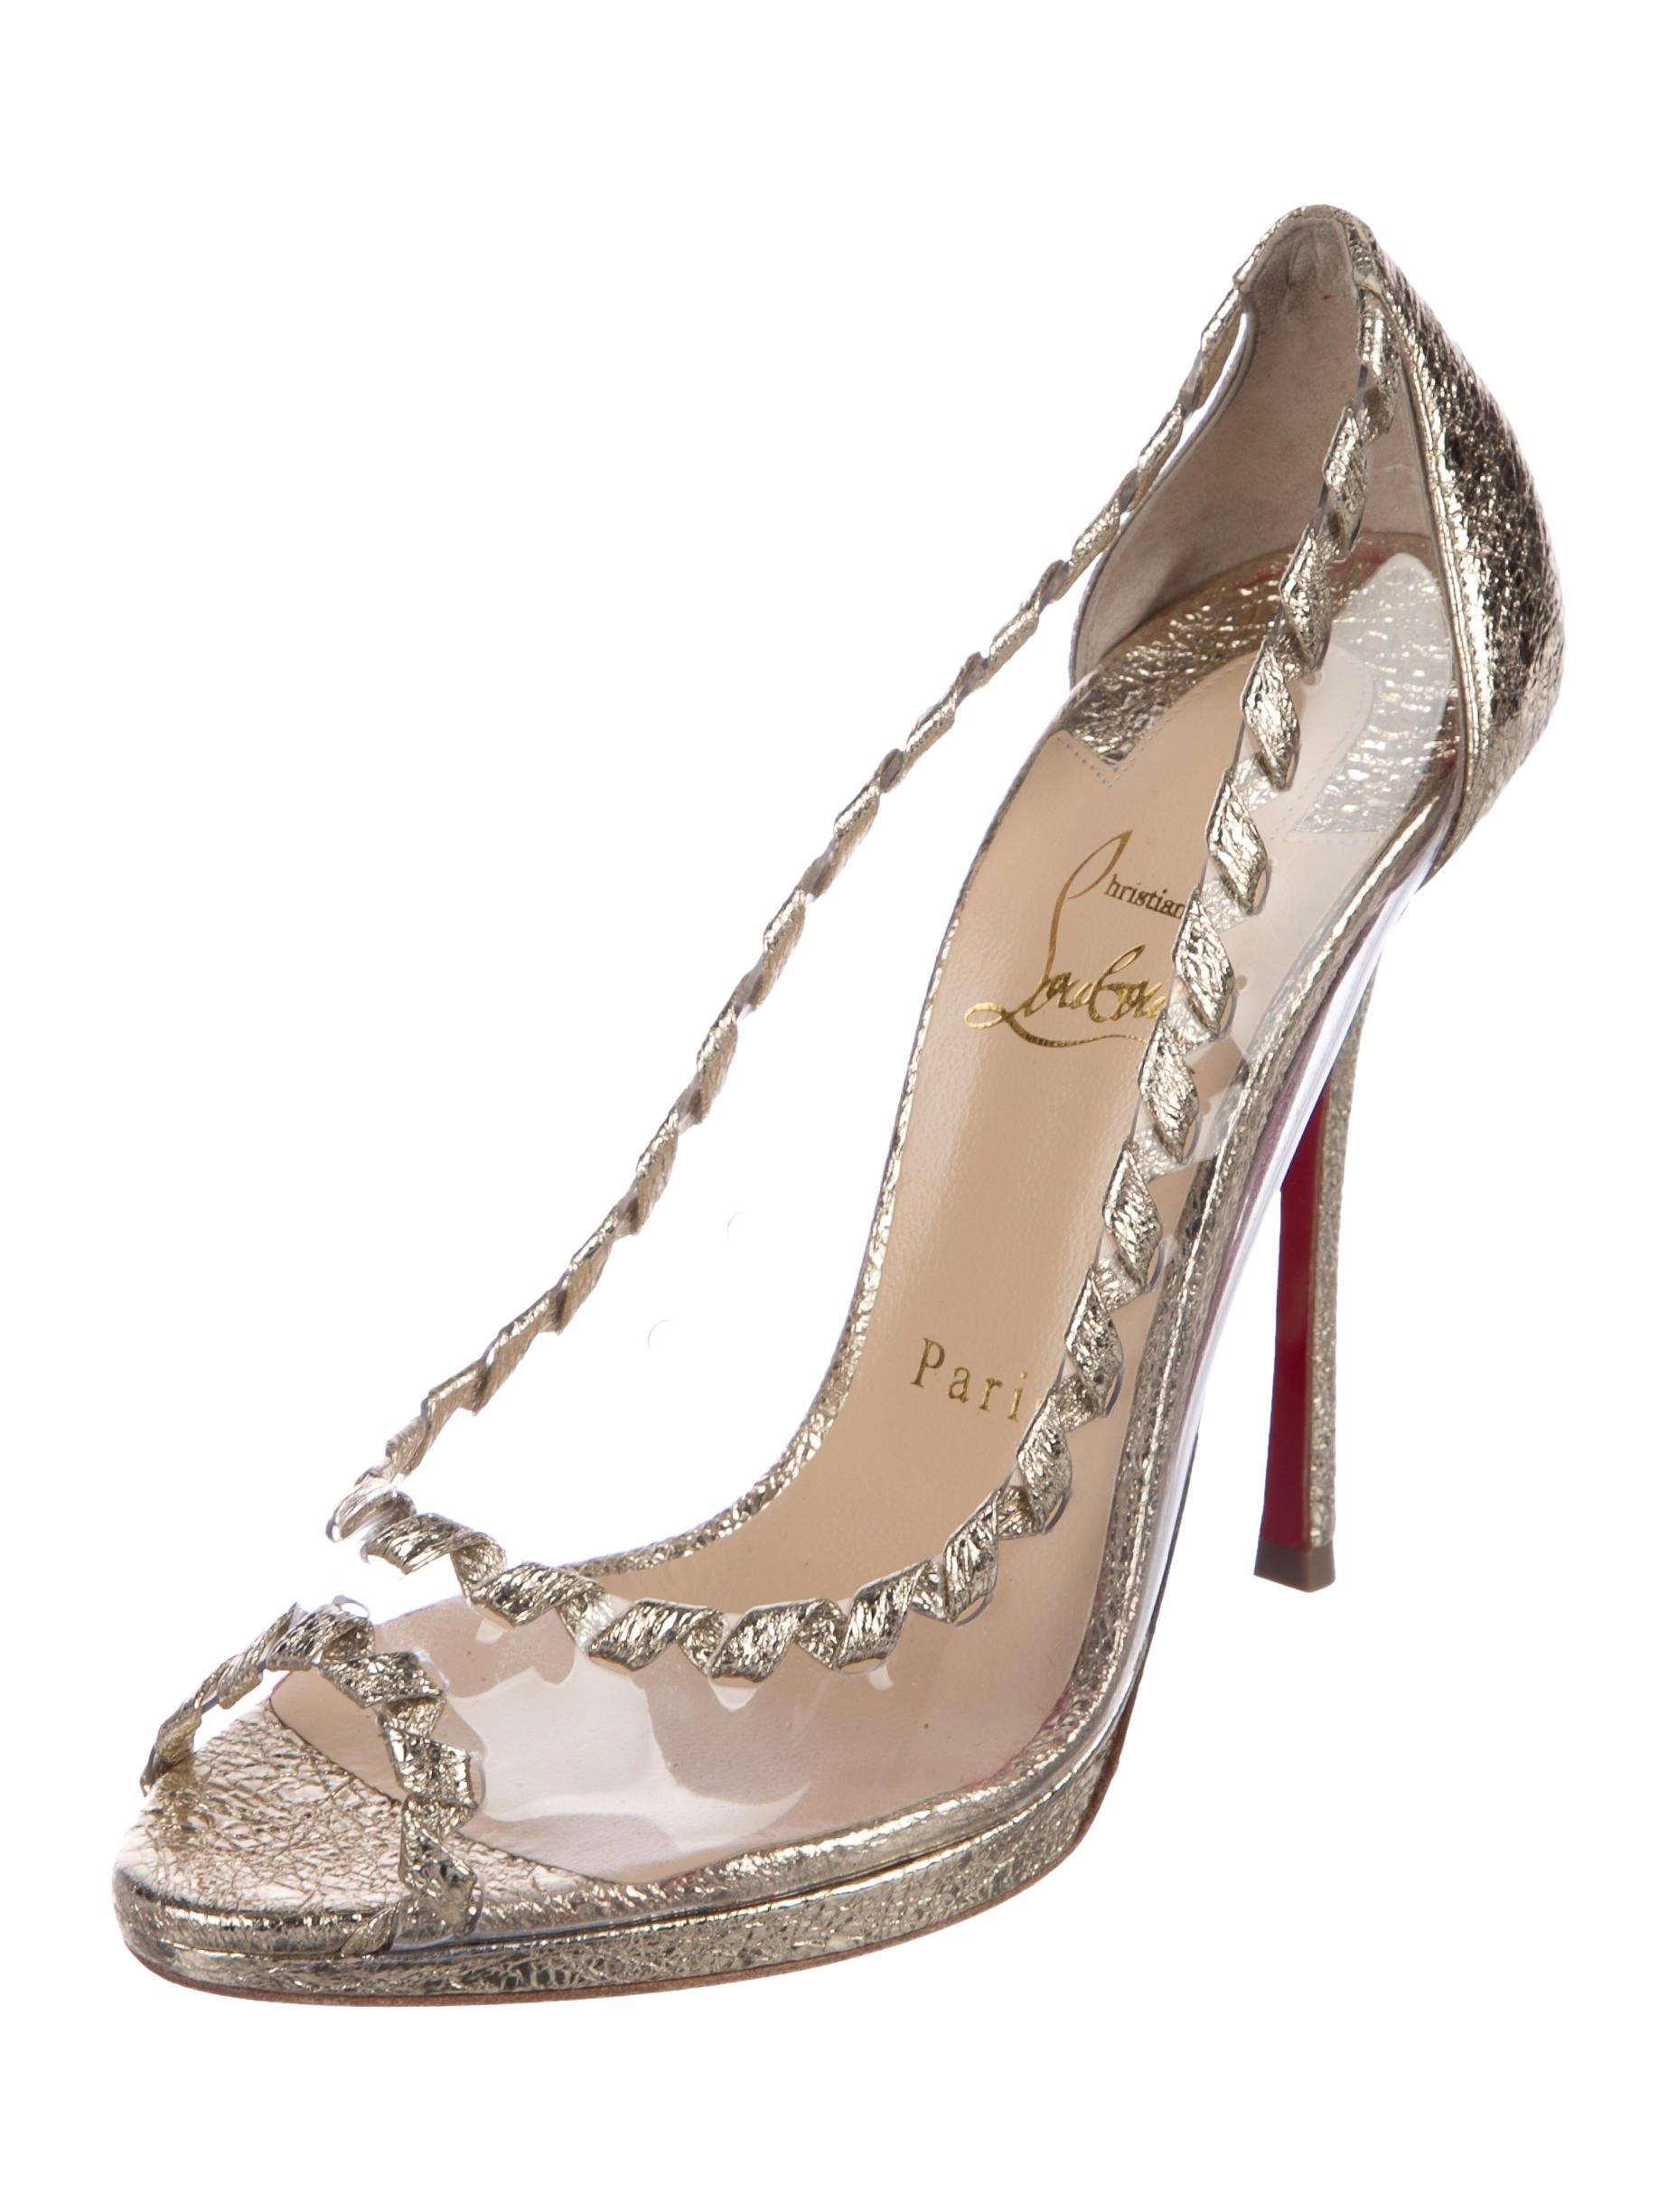 831e1be3b72d ... ireland christian louboutin peep sandals pumps 42463 5adc7